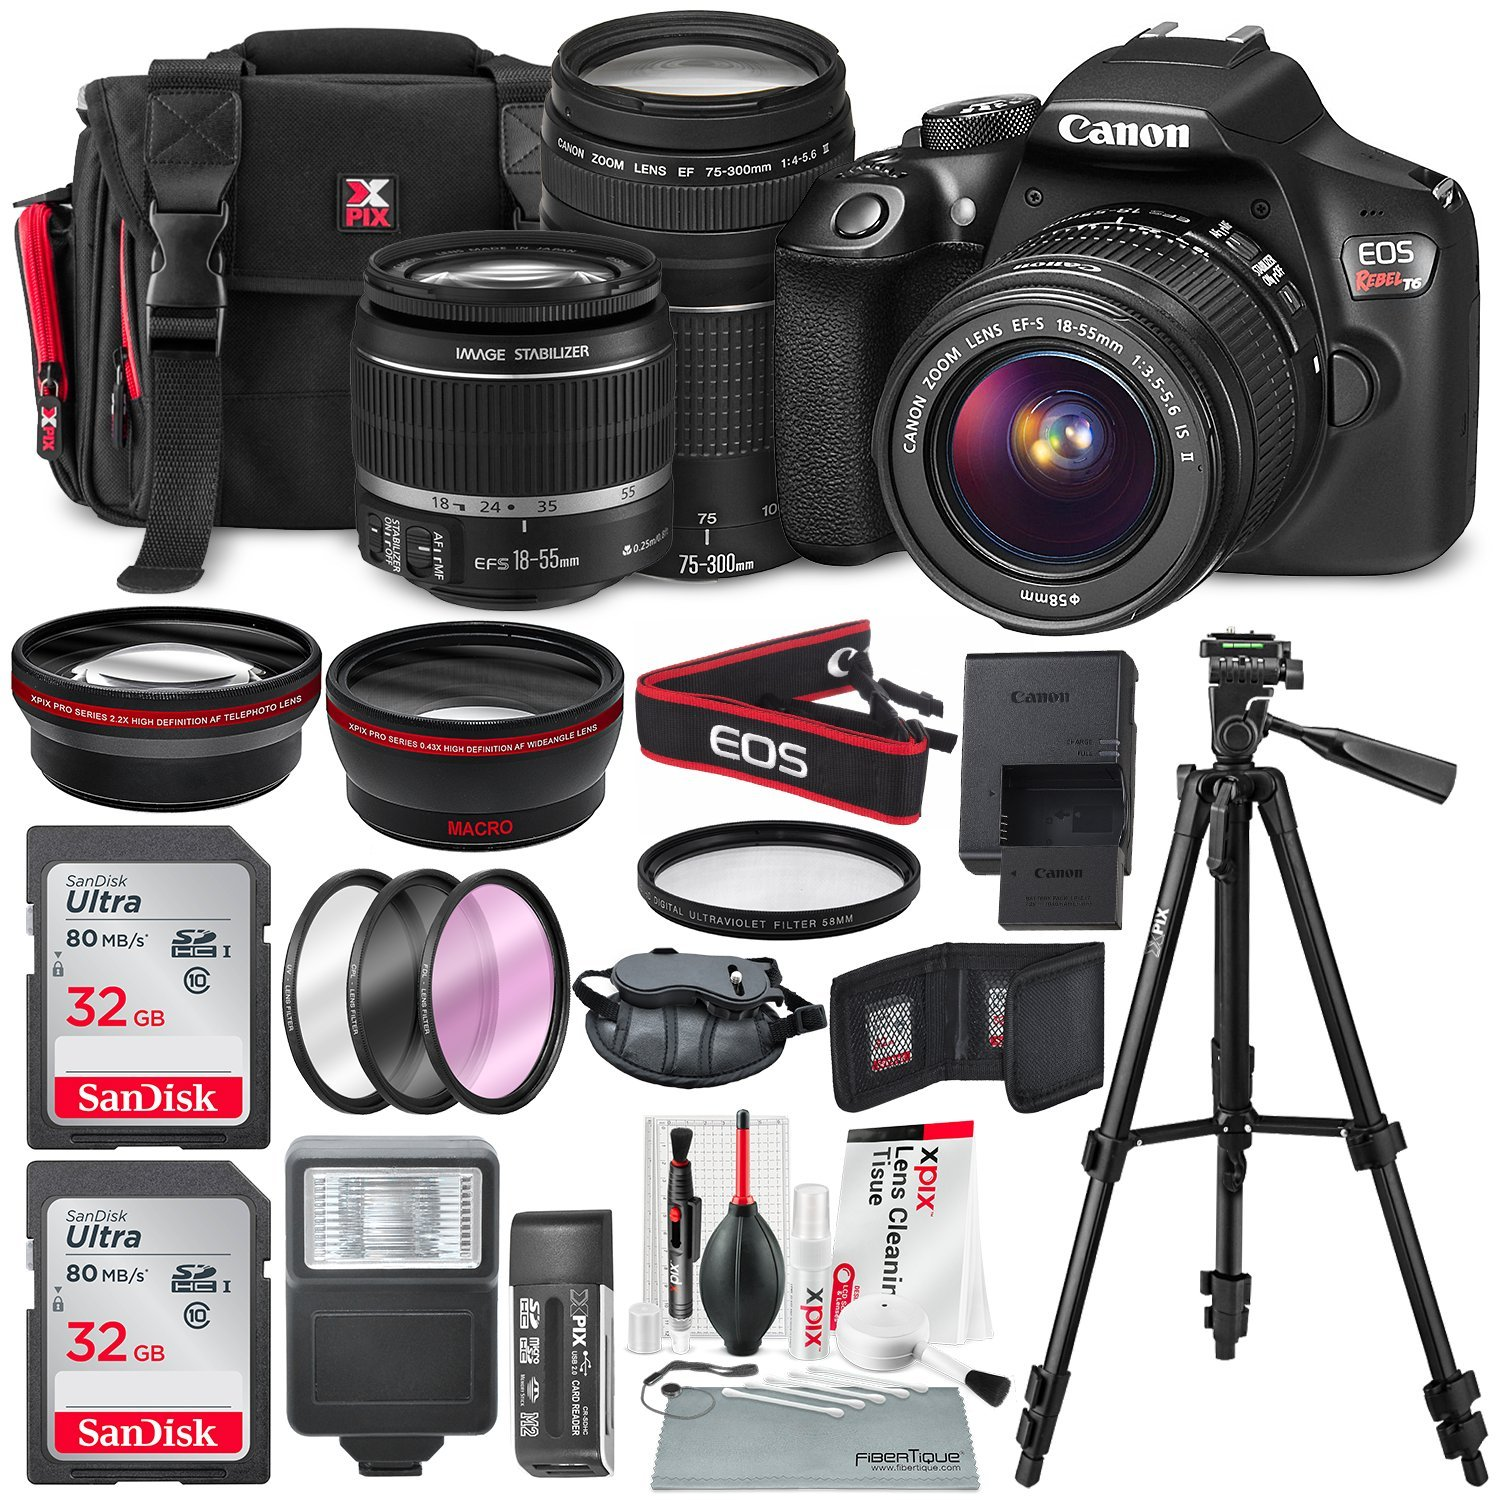 Canon EOS Rebel T6 DSLR Camera with EF-S 18-55mm f/3.5-5.6 IS II Lens, EF 75-300mm f/4-5.6 III Lens, 64GB, along with Fibertique Cleaning Cloth, and Xpix cleaning Kit and Deluxe Accessory Bundle by Photo Savings